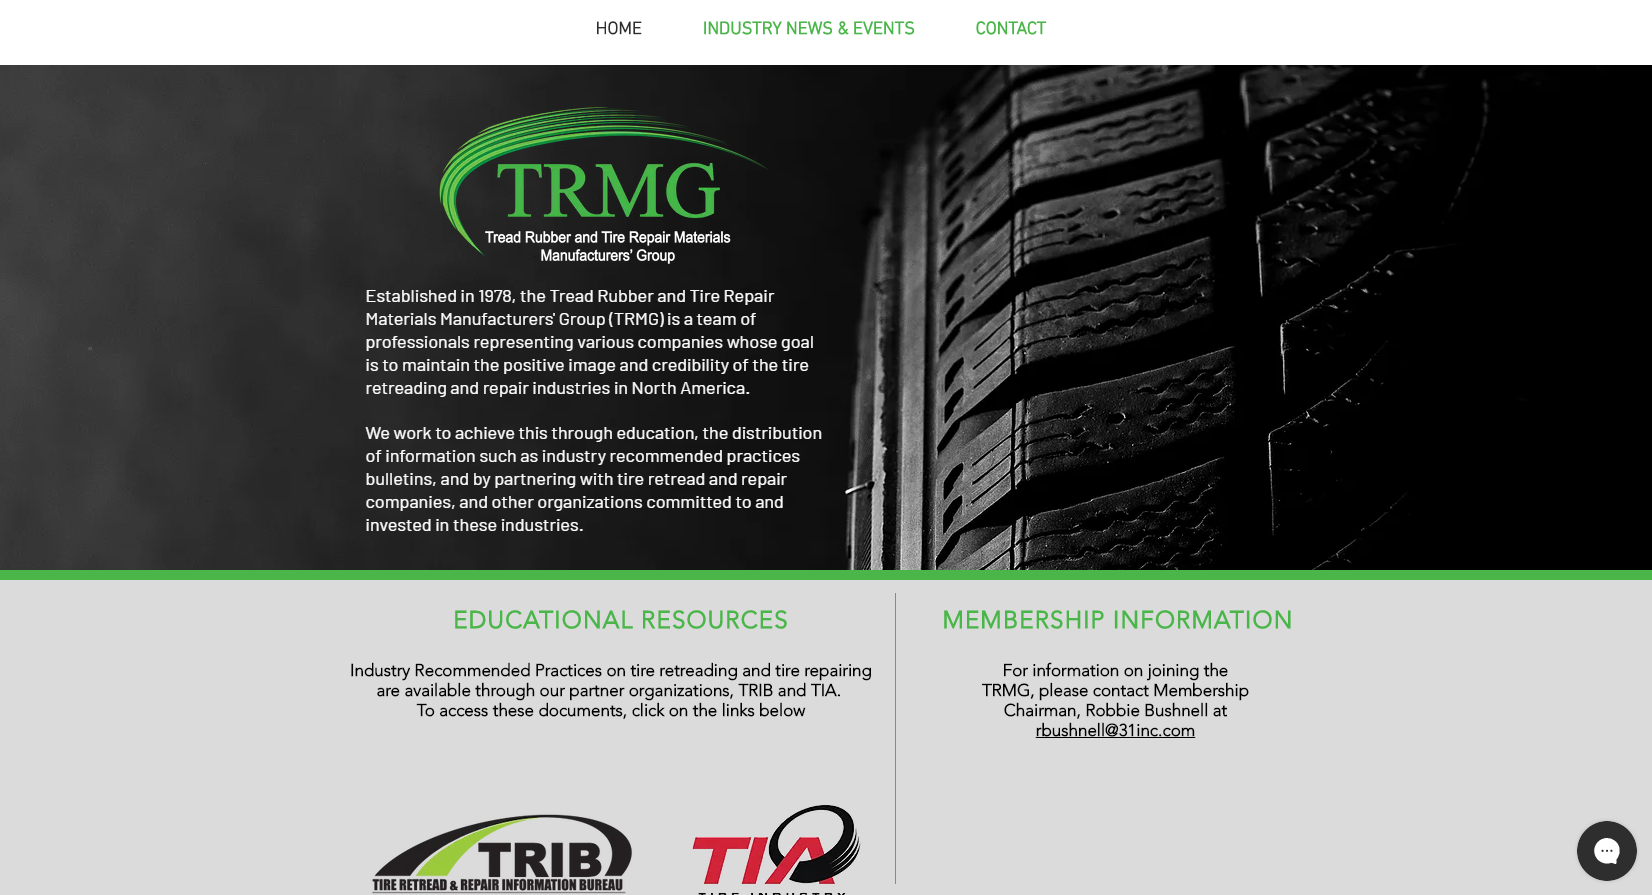 TRMG launches new website